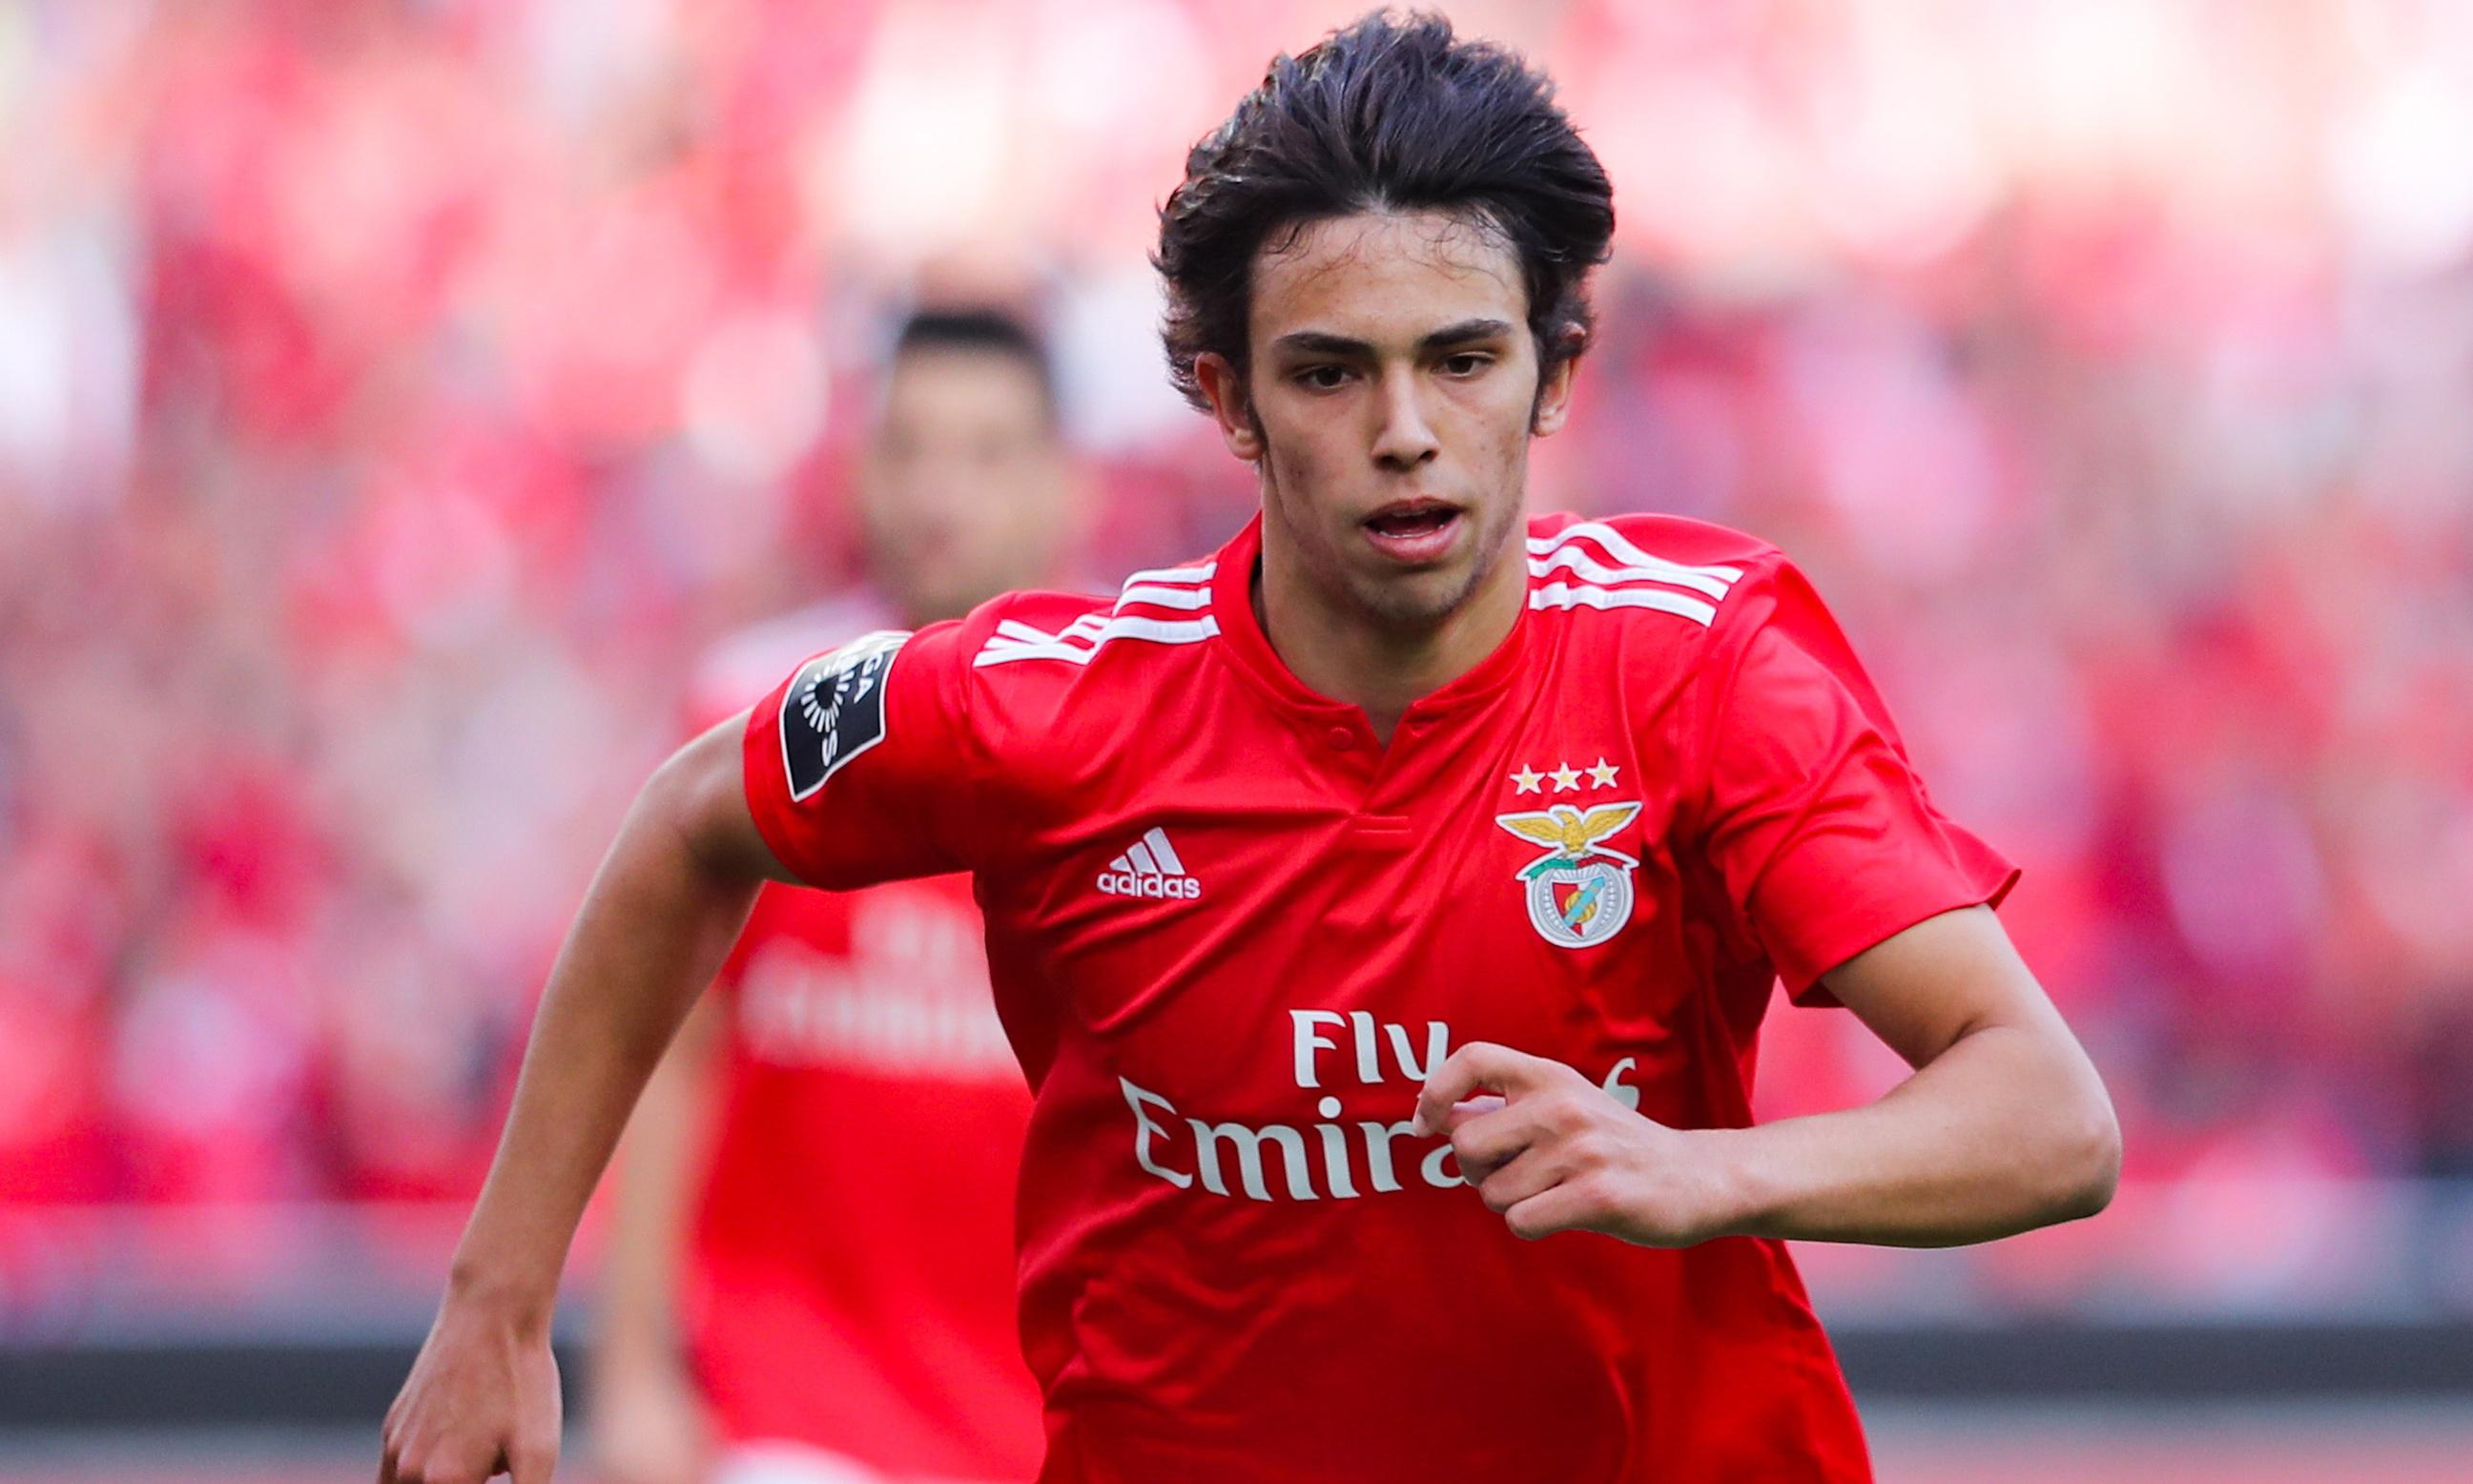 Football transfer rumours: João Felix to Real Madrid or Manchester United?